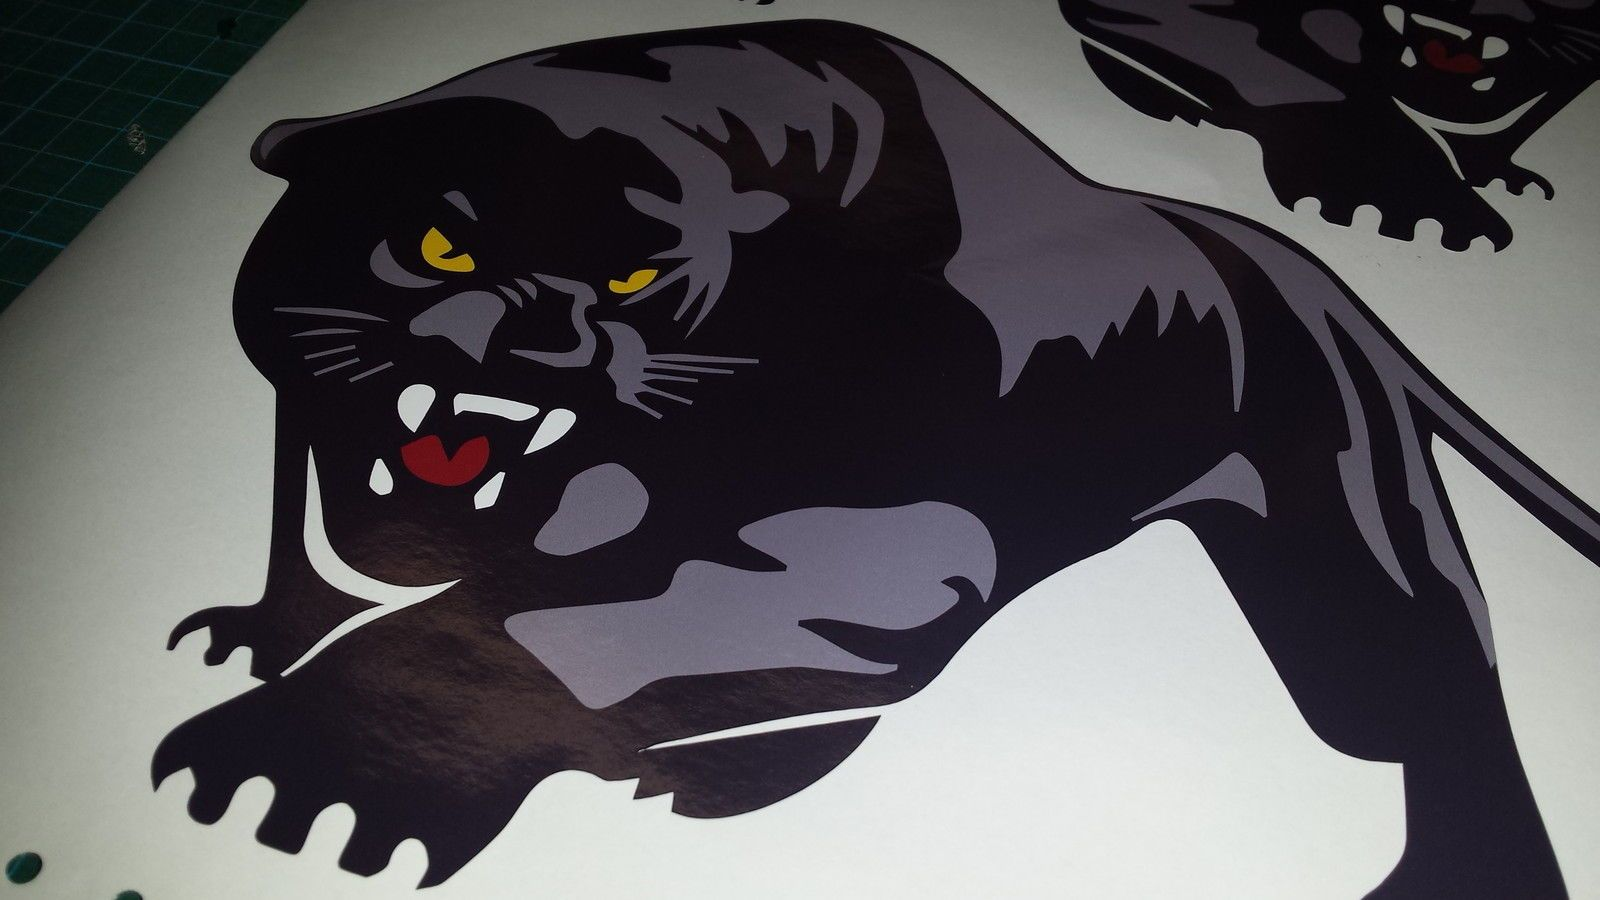 3x scomadi panther decals stickers 2 large 1 small for Custom vinyl mural prints